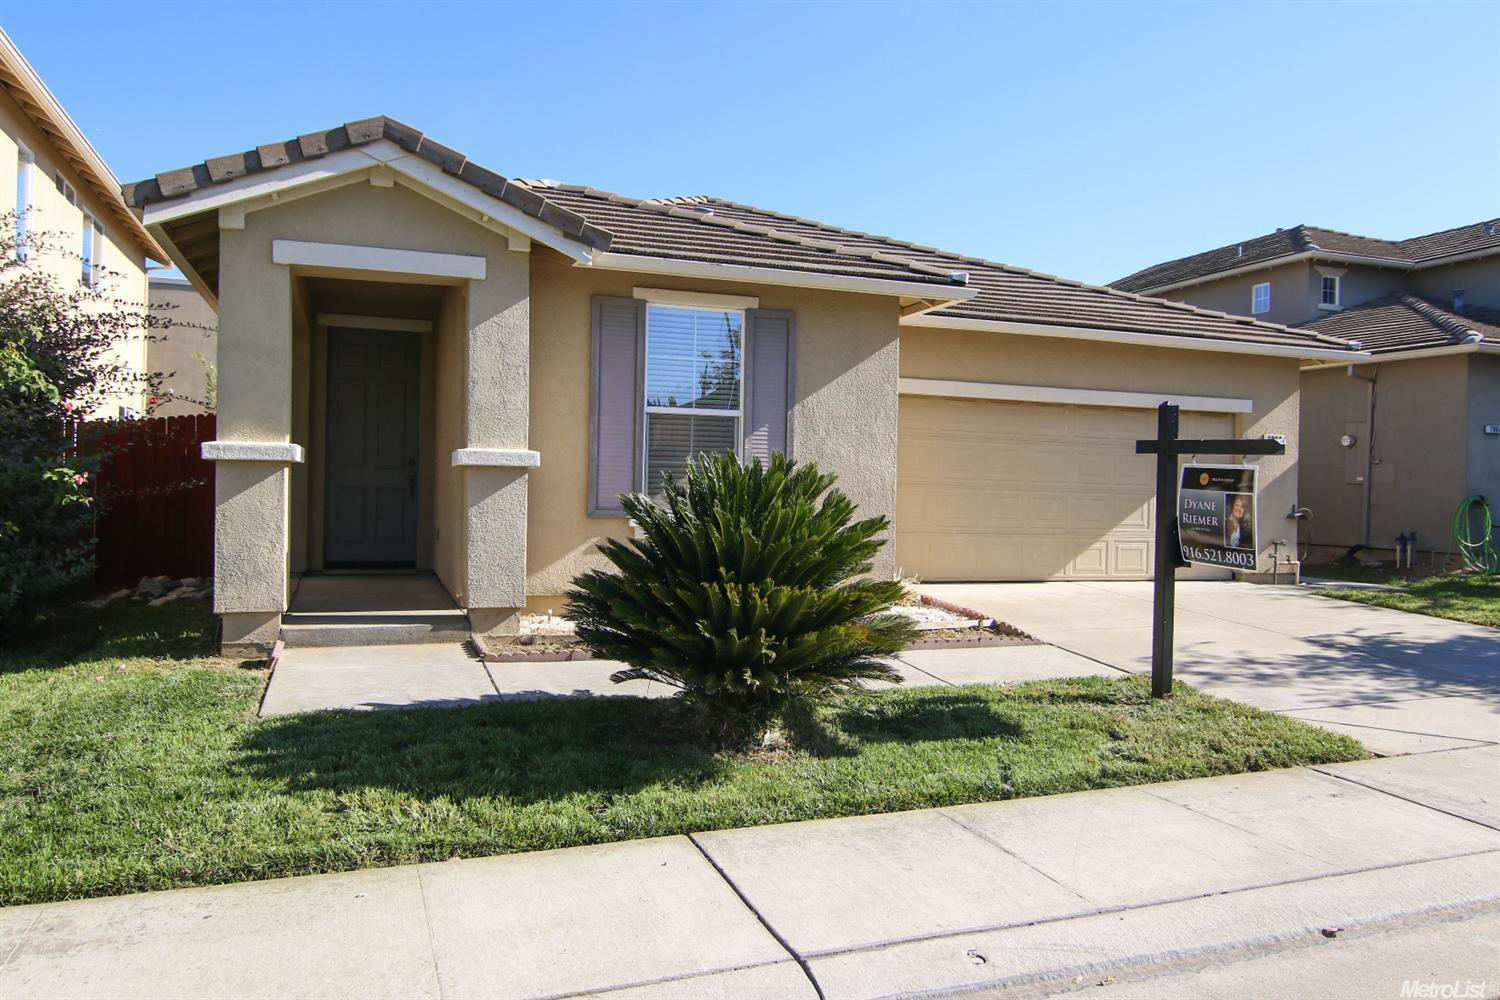 7968 Golden Ring Way, Antelope, CA